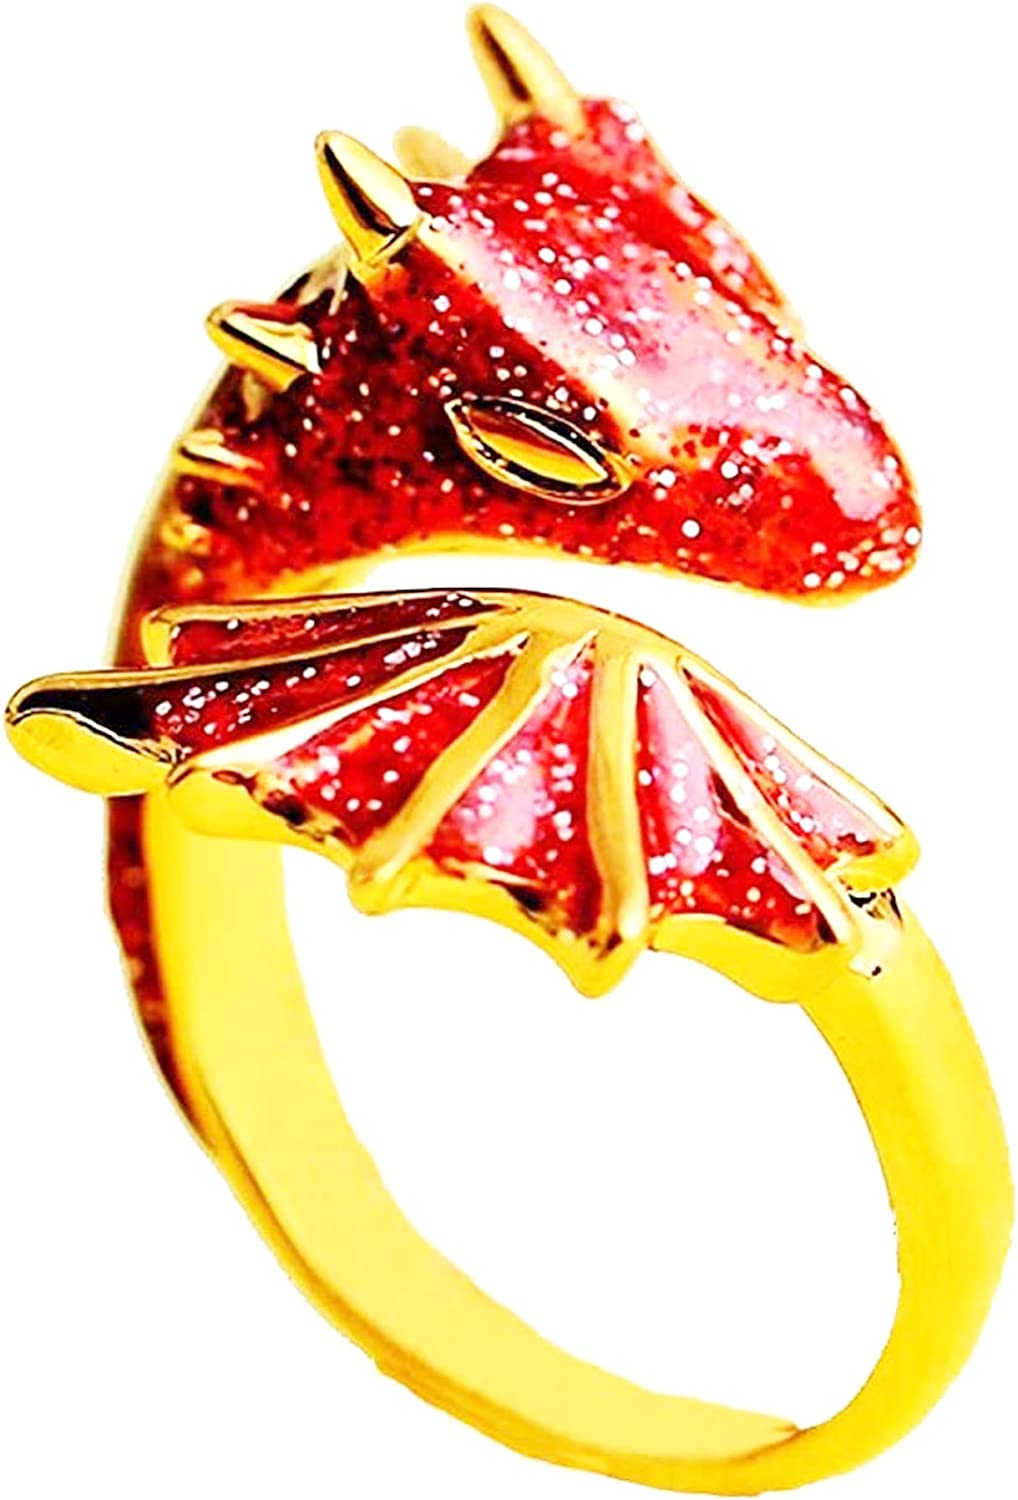 2021 Max 80% OFF New Gold Topaz Dragon Ring Lucky Fashionable Free-size Fingere Pet ad